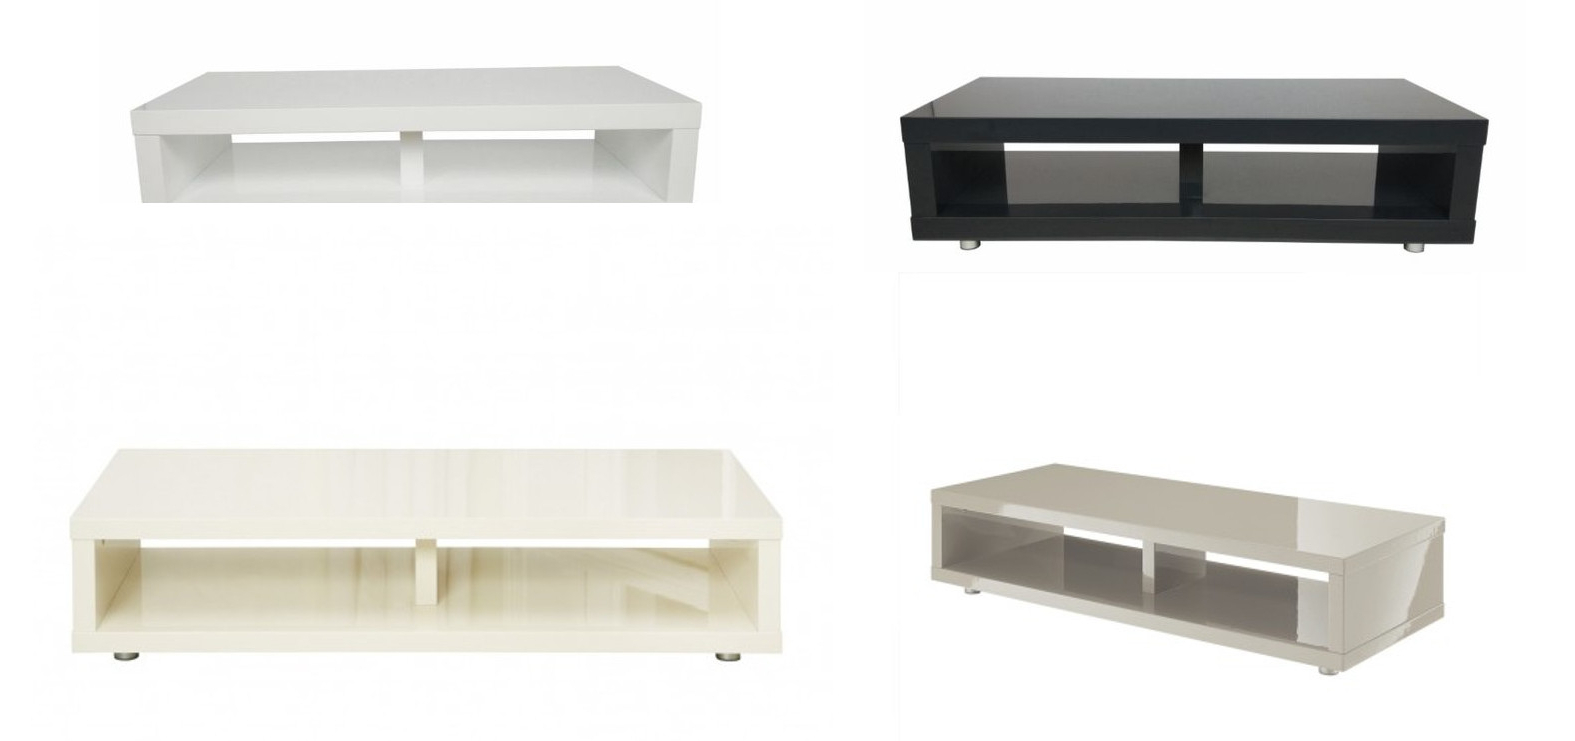 Puro High Gloss Tv Cabinet / Media Stand – Cream, White, Stone Or Inside Newest Cream High Gloss Tv Cabinets (View 17 of 20)